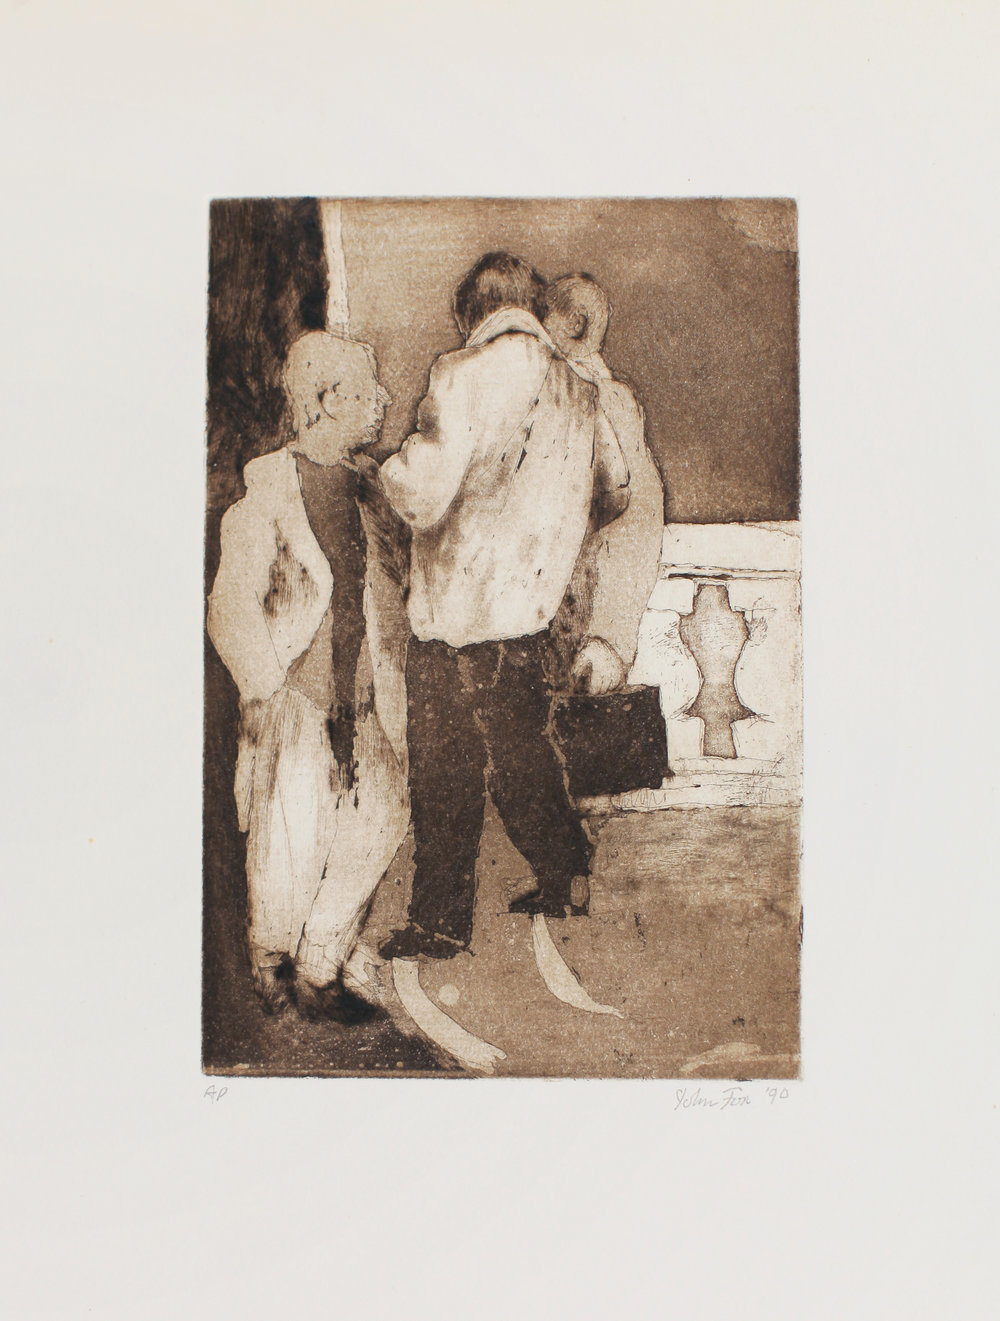 1990_Three_Men_etching_drypoint_and_aquatint_on_paper_20x14in_image_9x6in_WPF436.jpg